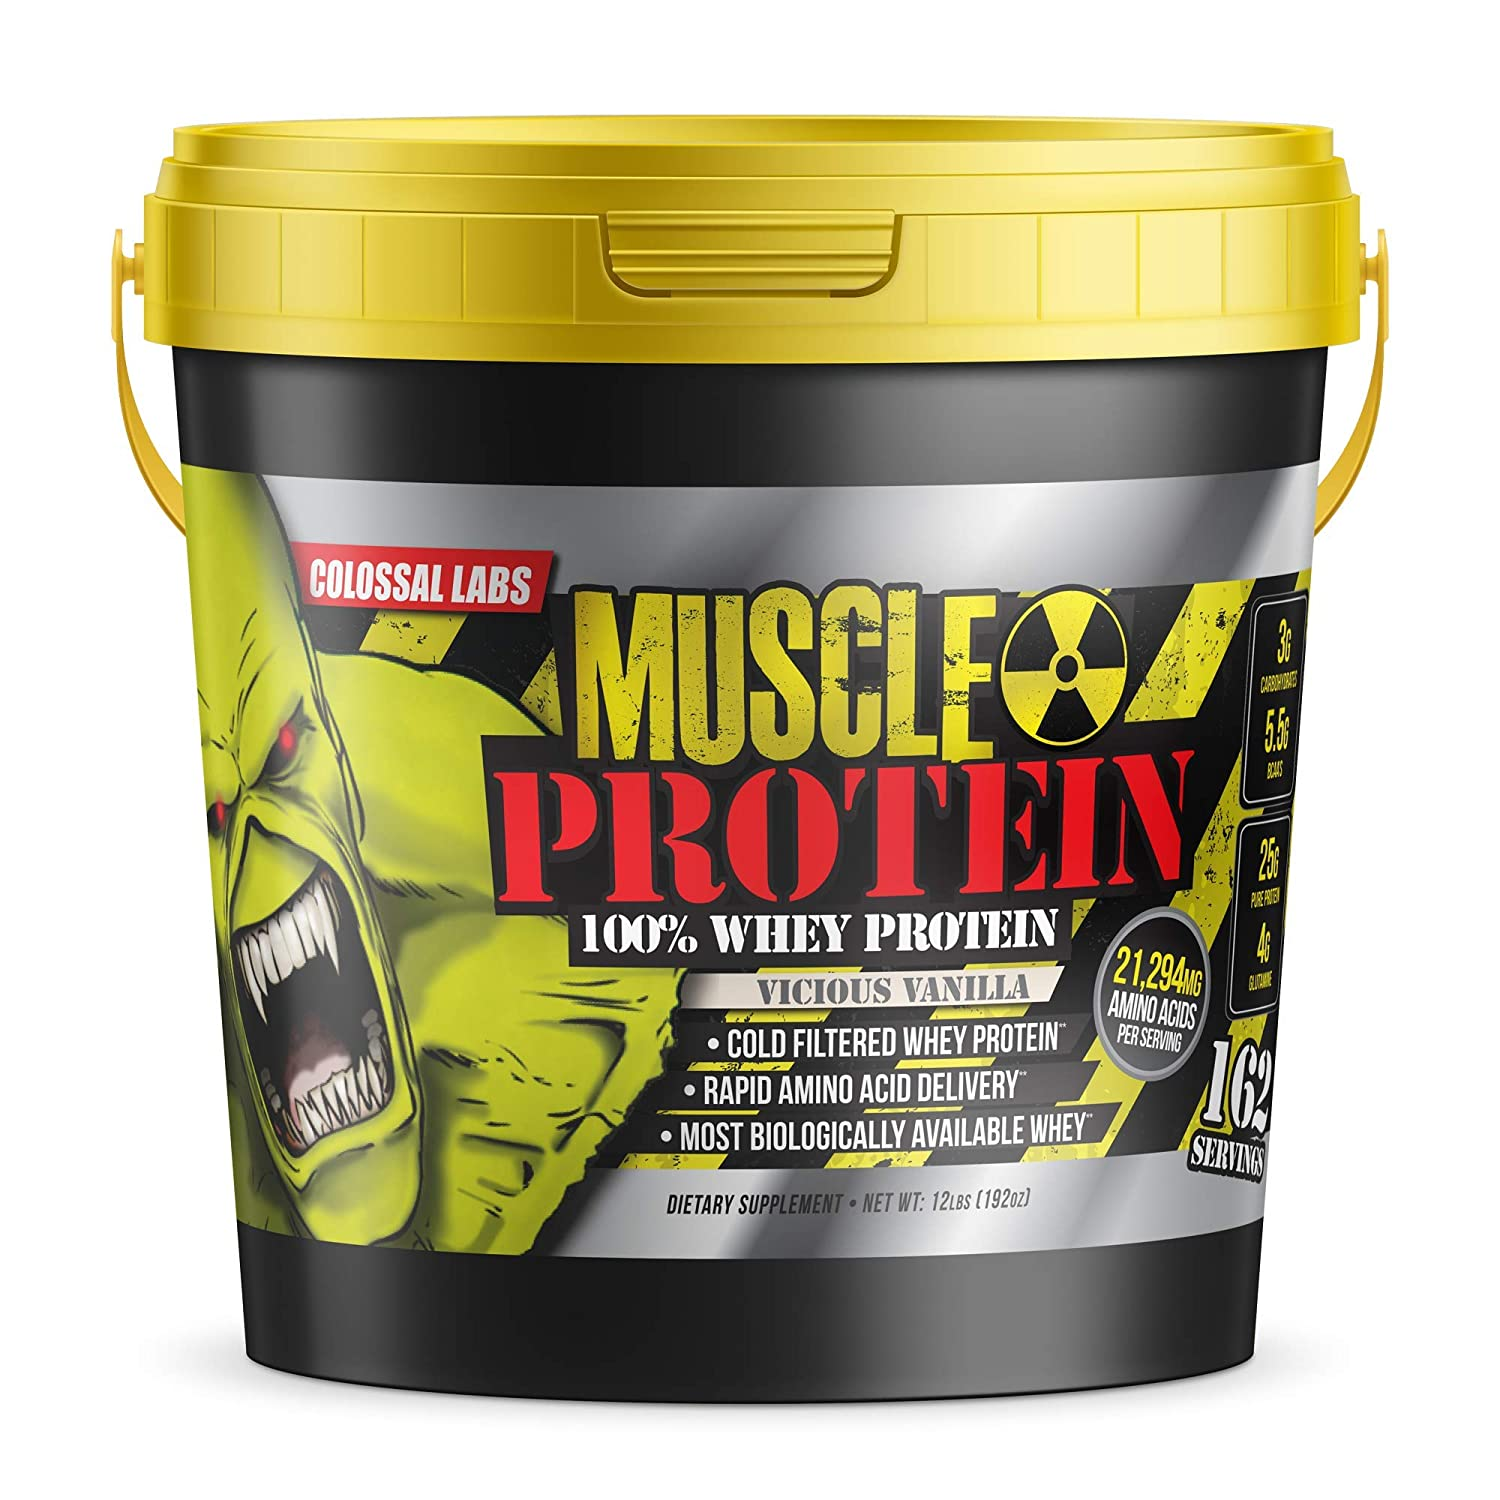 adf22a720 Amazon.com  Colossal Labs 10.5lbs Monster Muscle Protein – Vicious Vanilla   Health   Personal Care